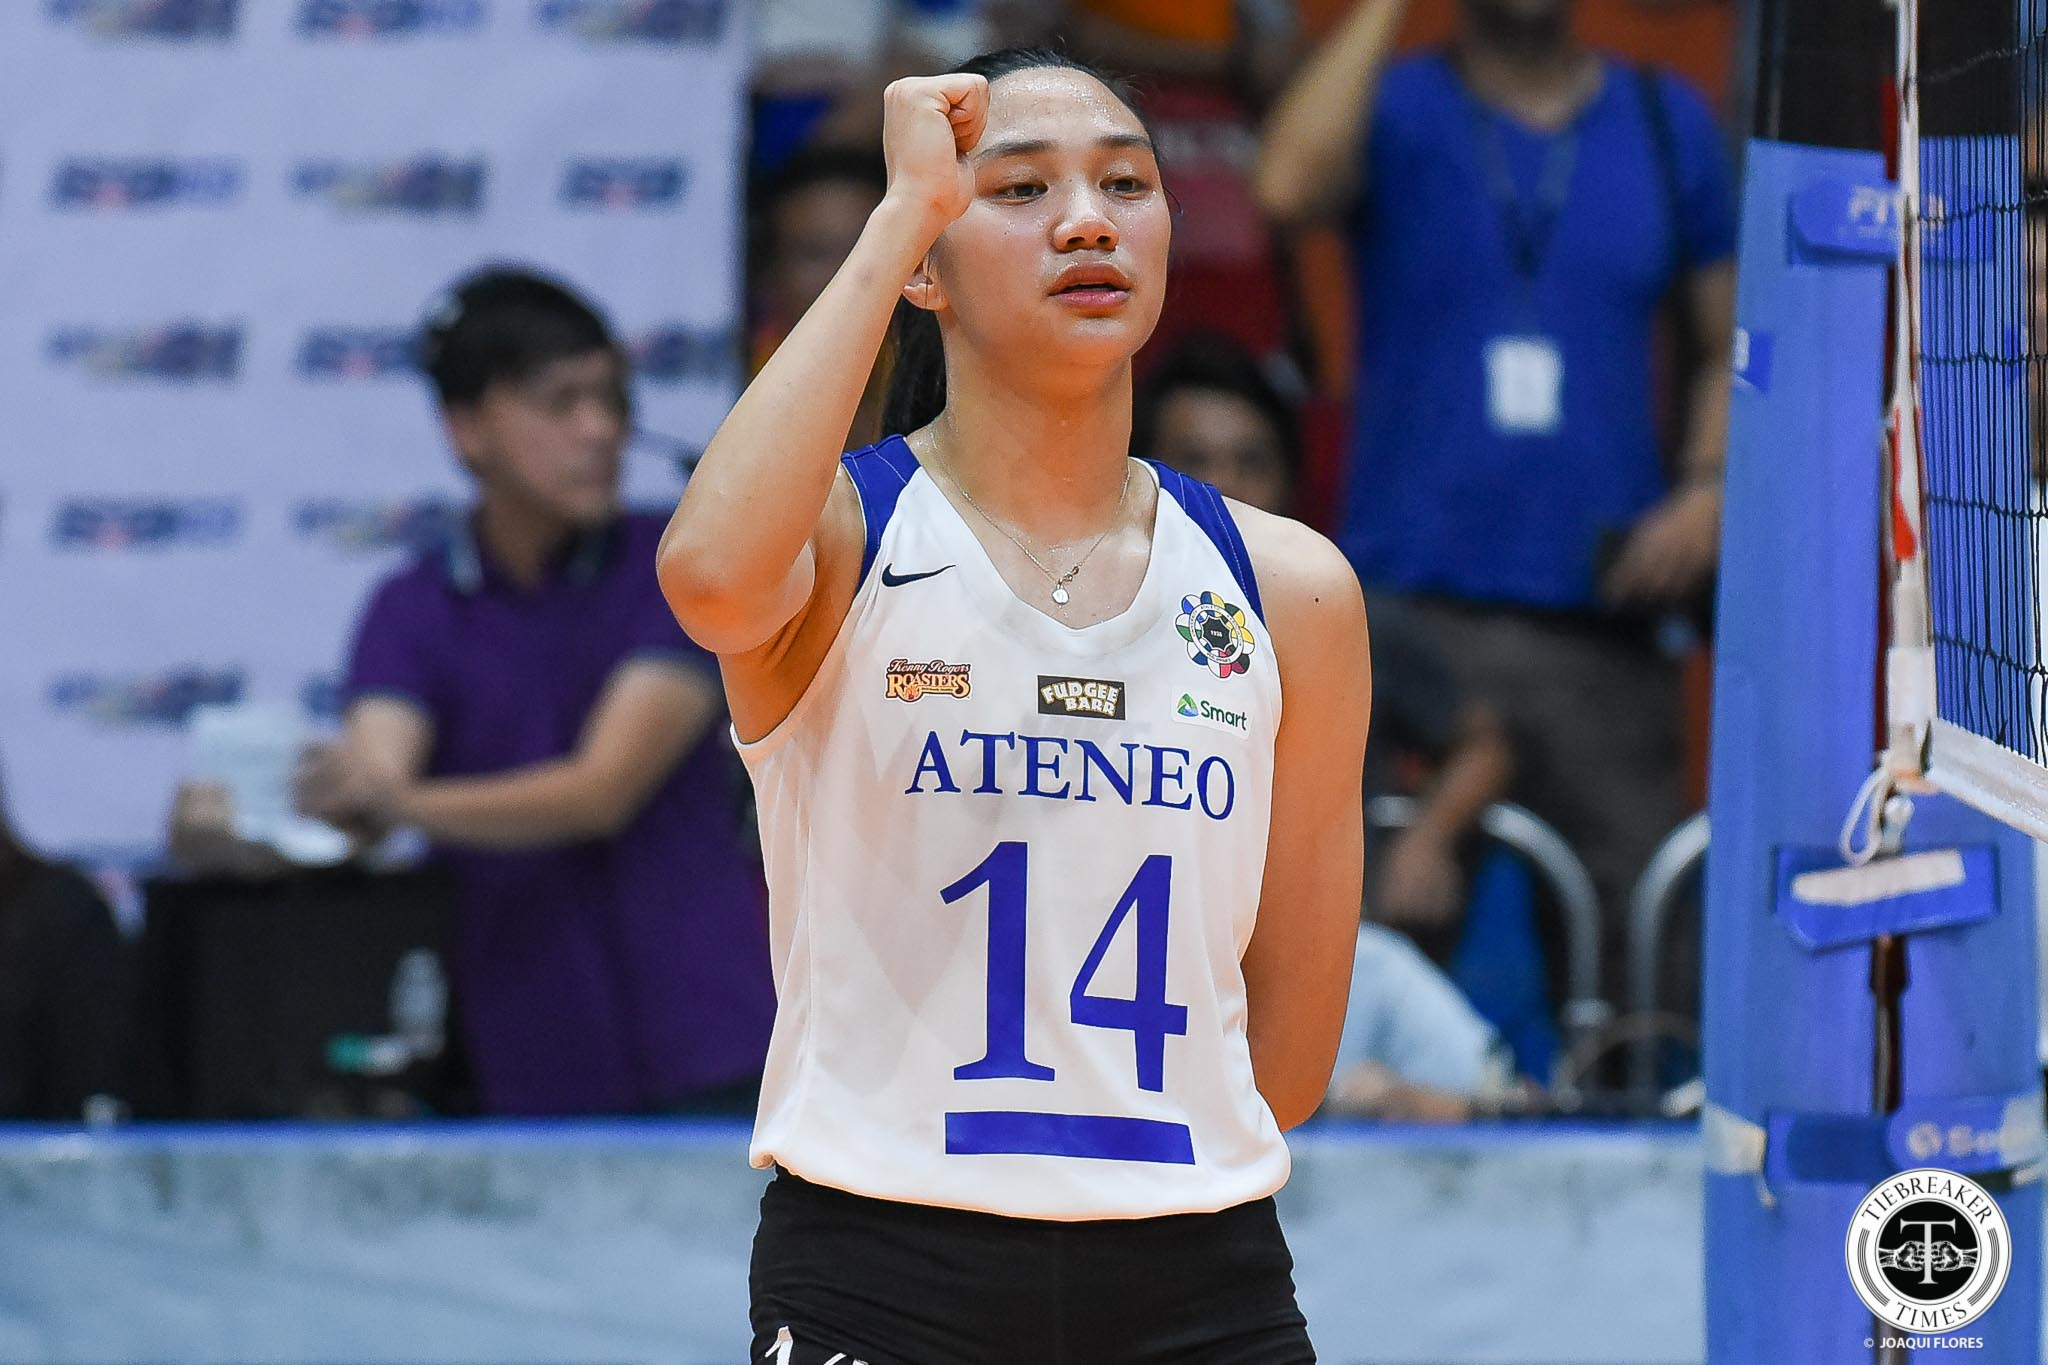 Tiebreaker Times De Leon starts as a champion, exits as a champion ADMU News UAAP Volleyball  UAAP Season 81 Women's Volleyball UAAP Season 81 Bea De Leon Ateneo Women's Volleyball